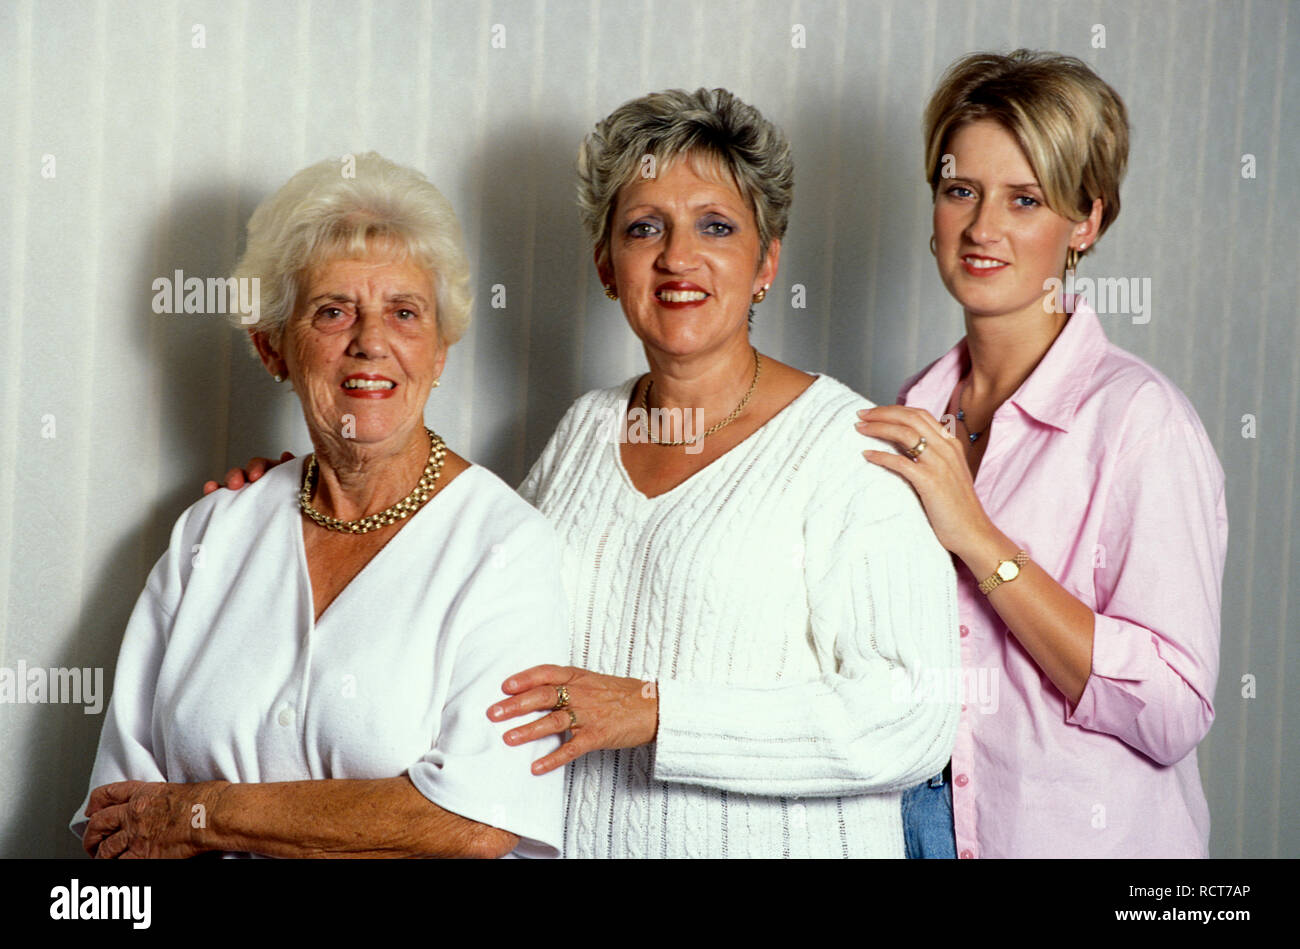 Three generations of women with similar features - Stock Image